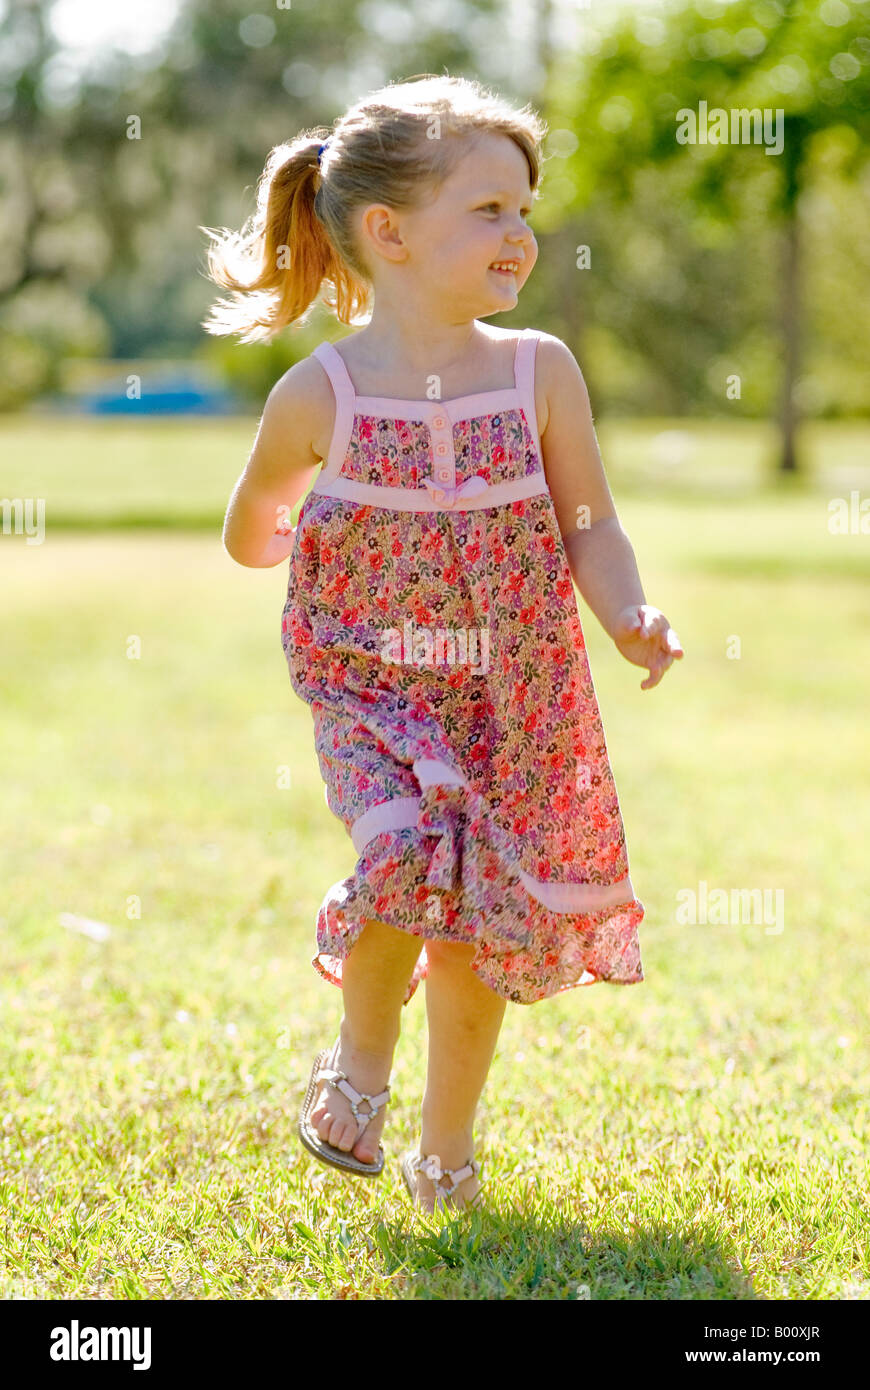 Four Year Two Year Community: Little 4 Year Old Girl Running In The Park In Sun Dress